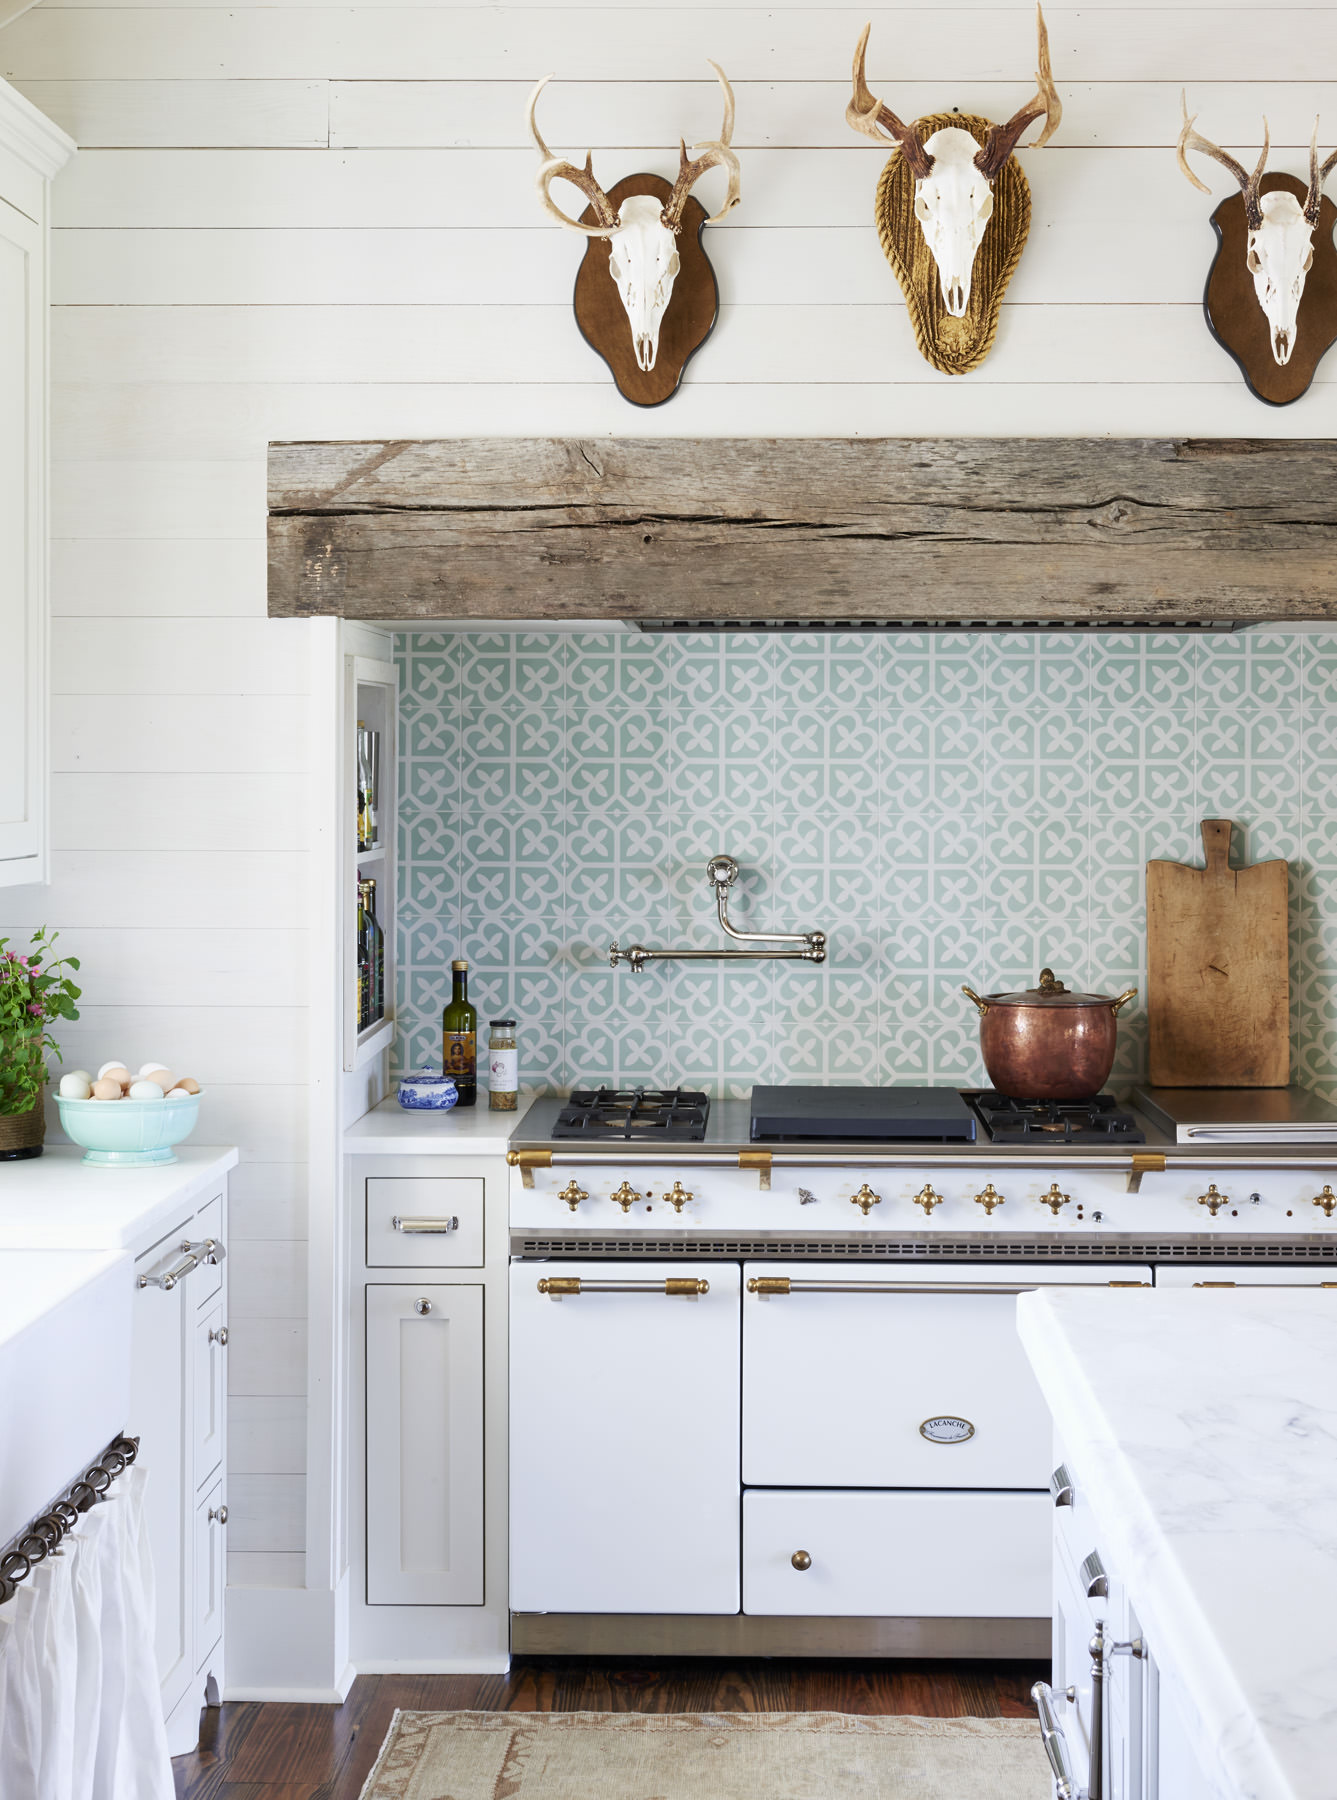 Farmhouse kitchen with a California cool vibe. Using minty, Spanish inspired cement tiles behind the stove. Interior designer:  Ashley Gilbreath